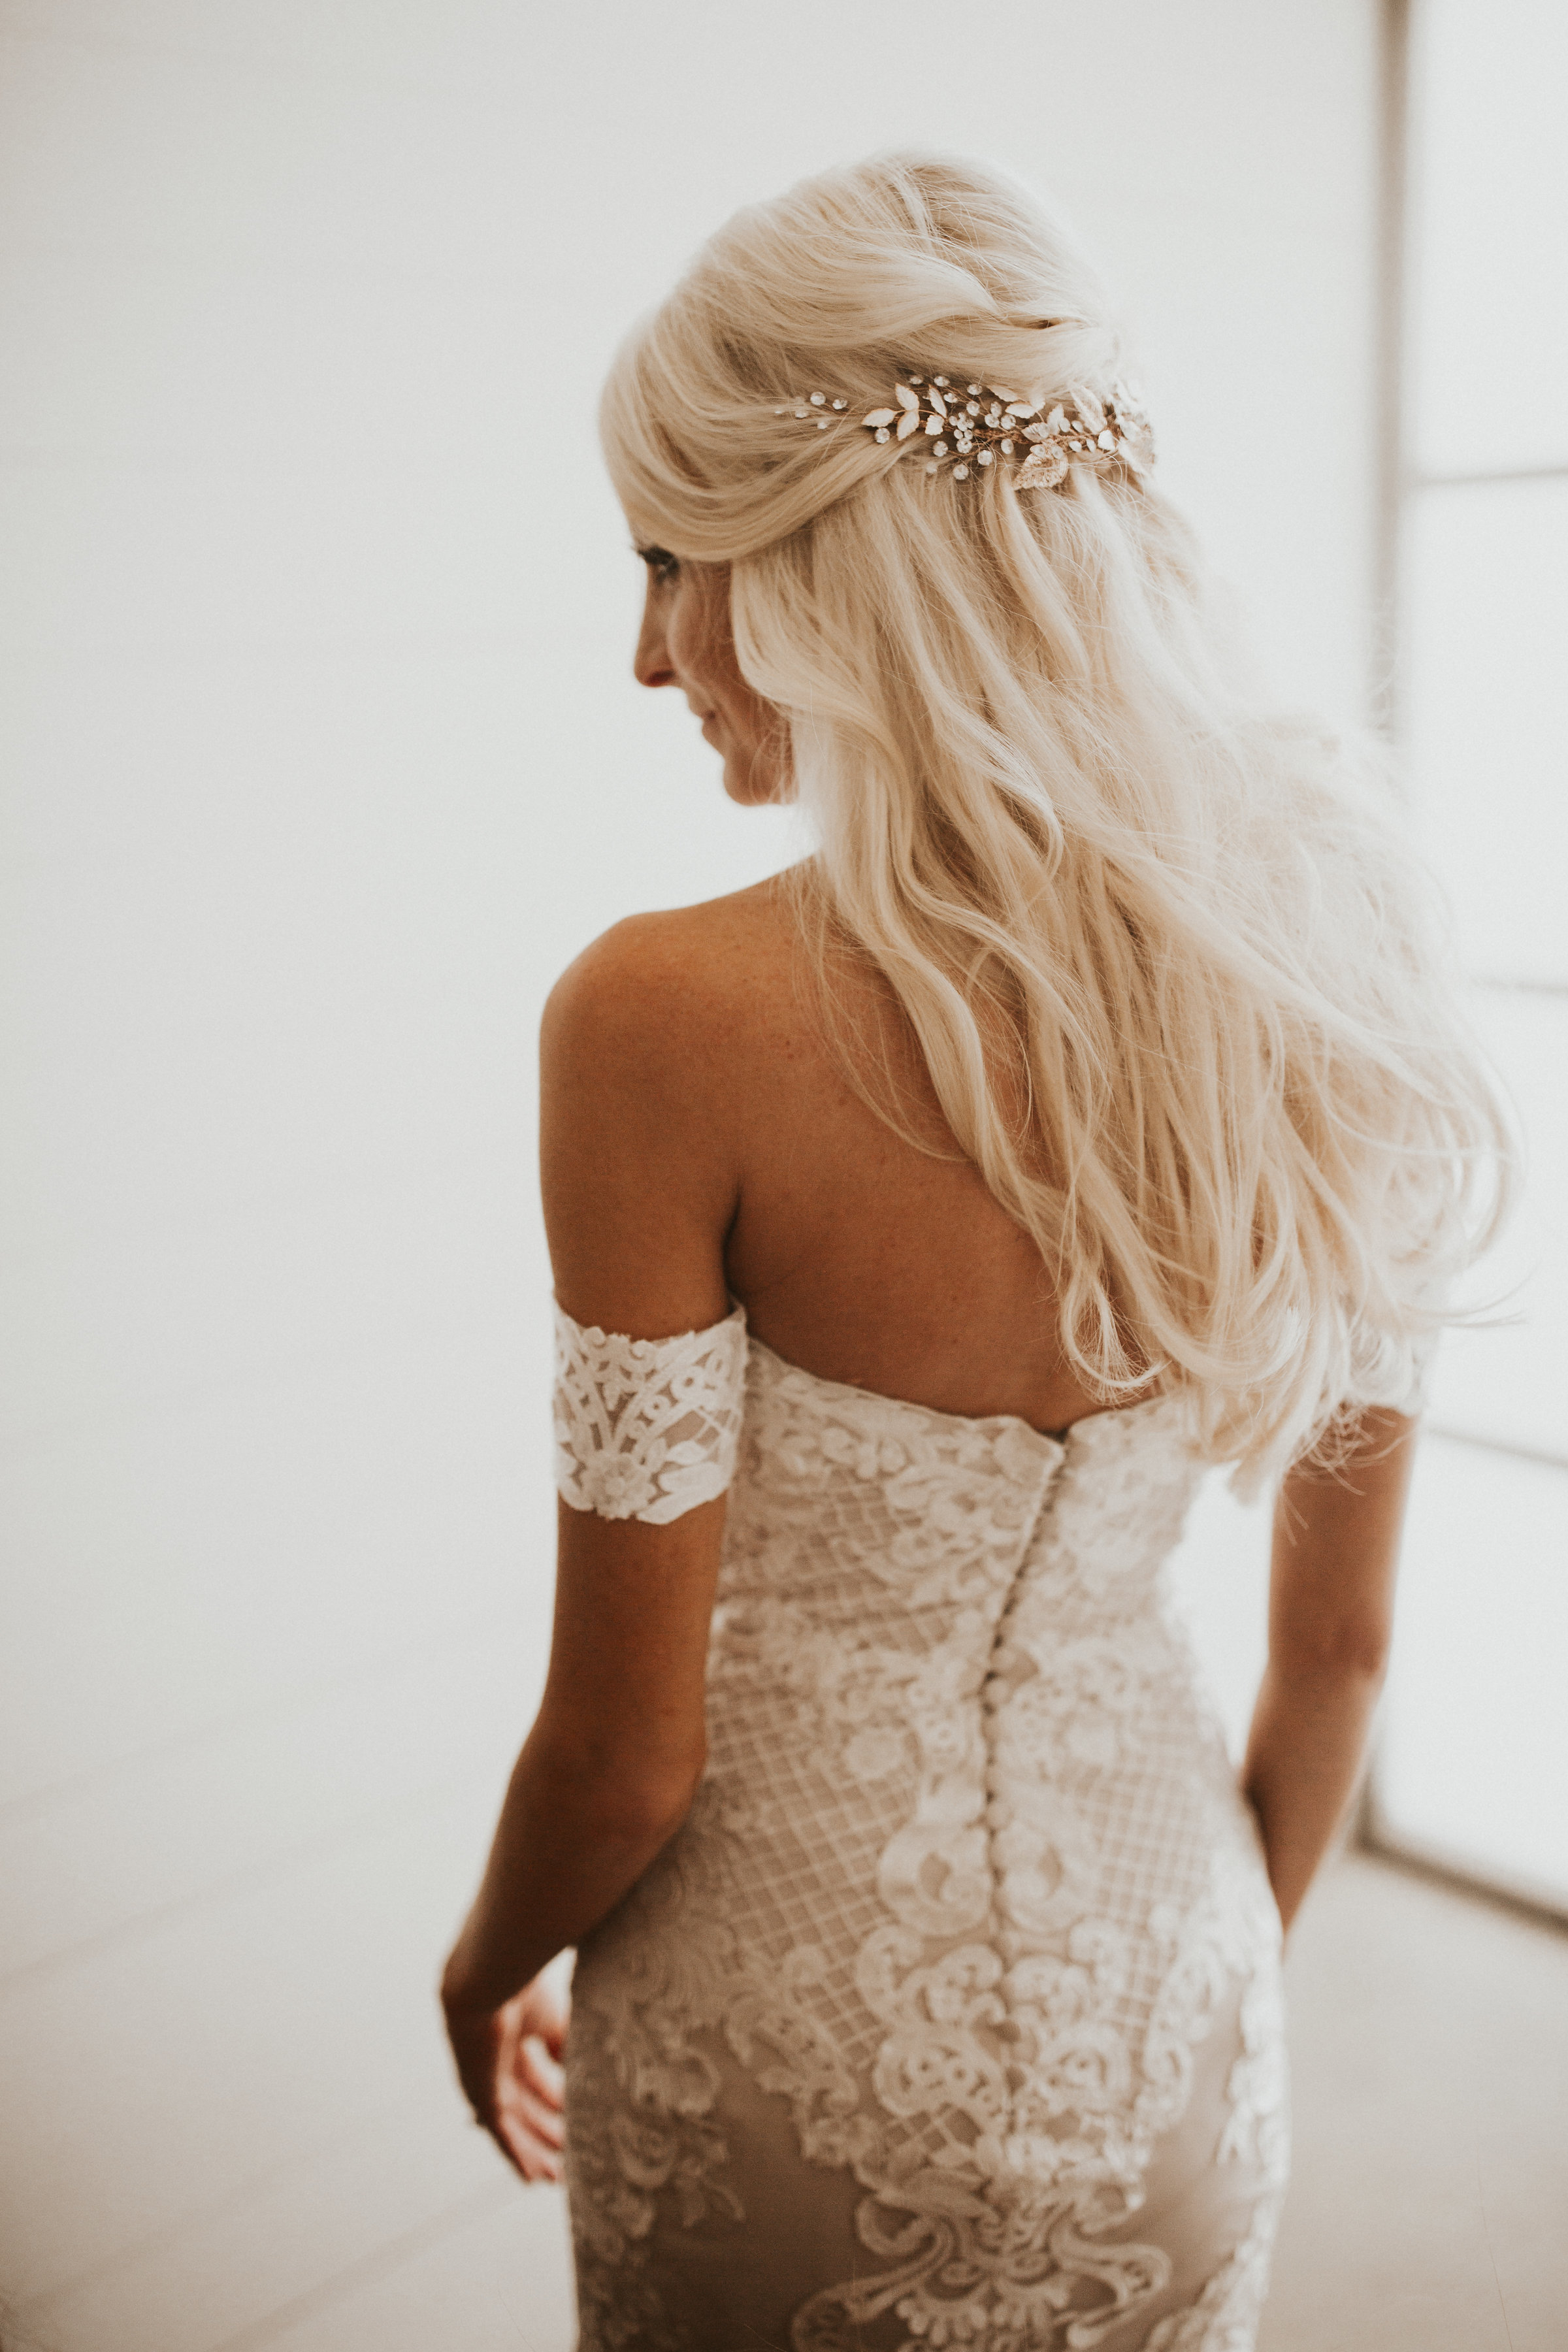 bridal rates & faq - TRAVEL FEE - All on location services will require a $50 travel fee per artist for any locations within Austin. Travel fee will increase based on distance and travel time for any locations outside the local area.HOURLY RATE -Touch-ups are available at a rate of $100/hr and begins at the end of scheduled service(s) time until desired.DEPOSIT + PAYMENT -To reserve bridal services on your wedding day a refundable deposit is required. Final payment will be invoiced and due 30 days before event. Any changes or additions day-of will be charged at the end of each service.